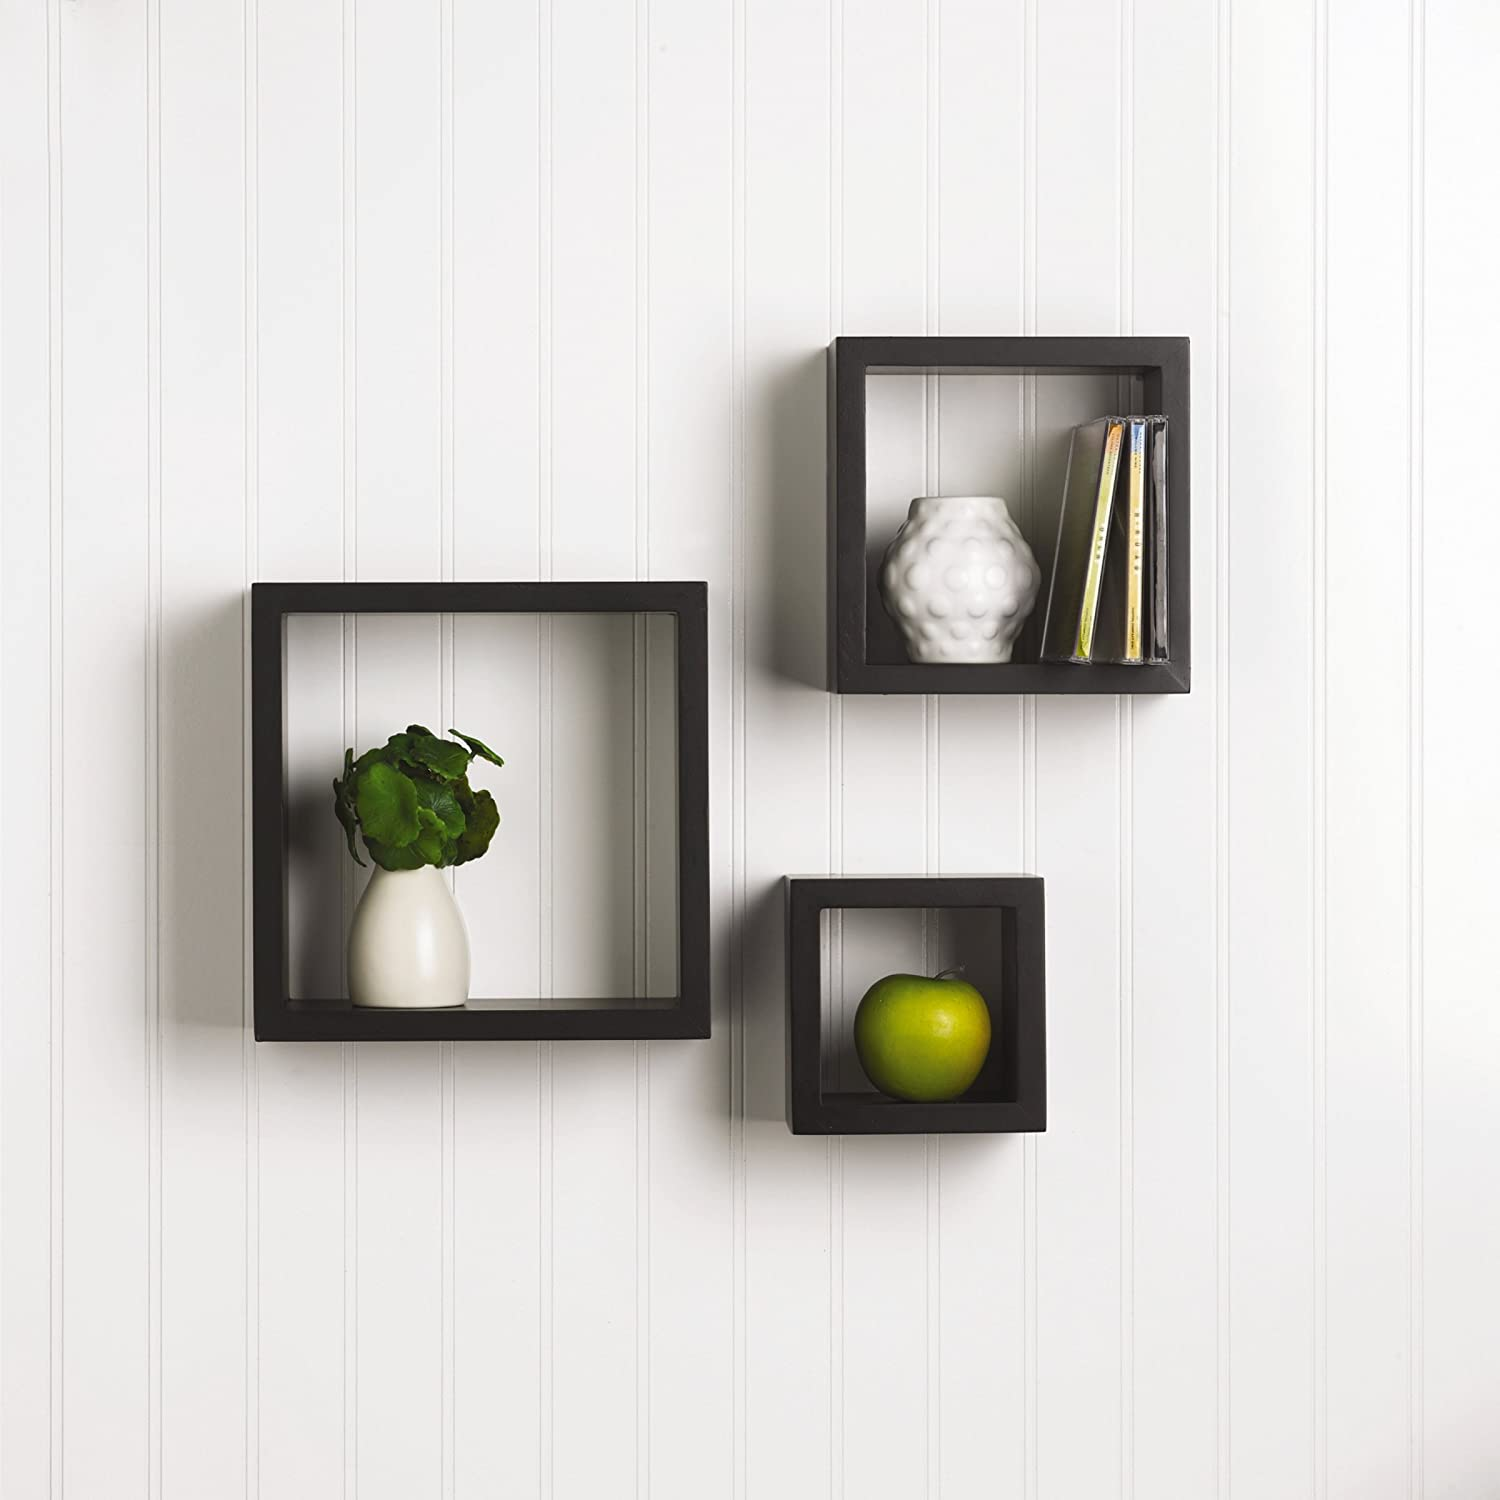 Design Wood Shelves For Walls amazon com melannco square wood shelves set of 3 black home kitchen